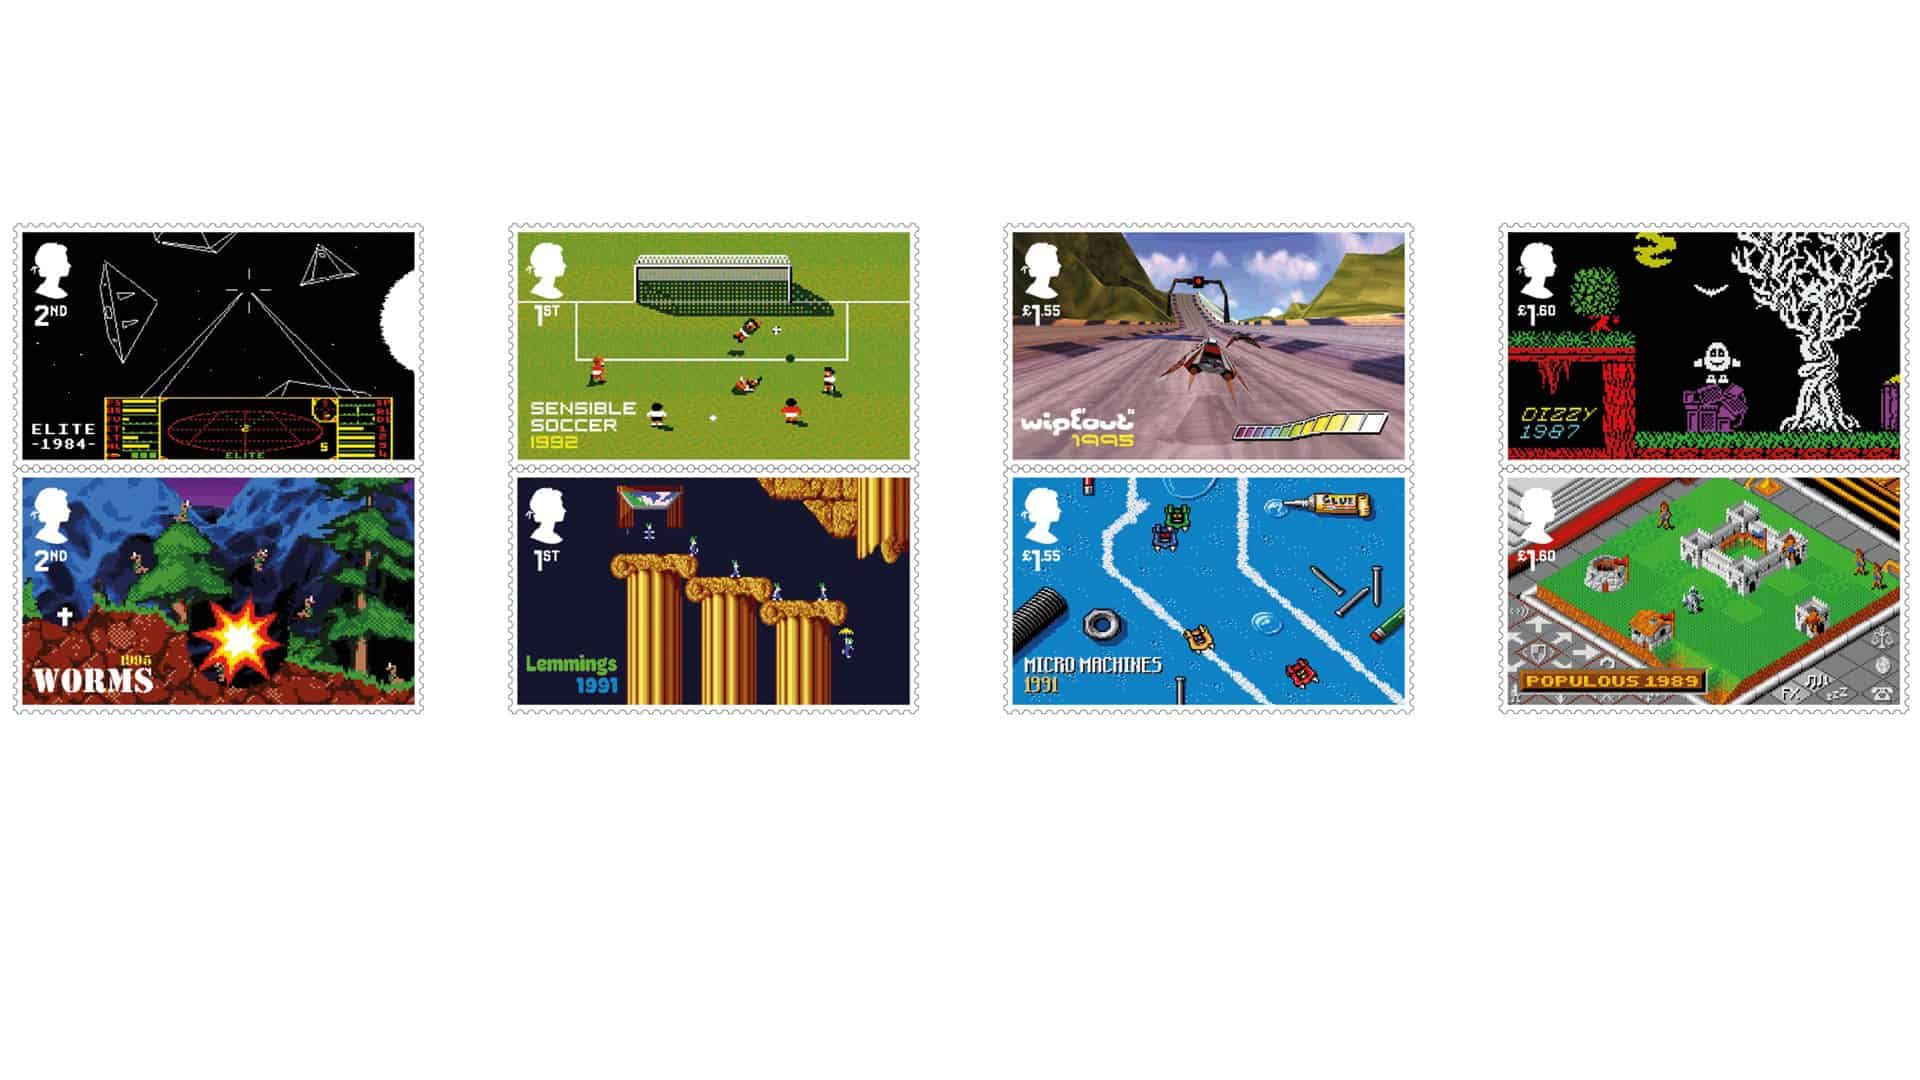 Royal Mail unveils stamp collection celebrating UK's contribution to gaming